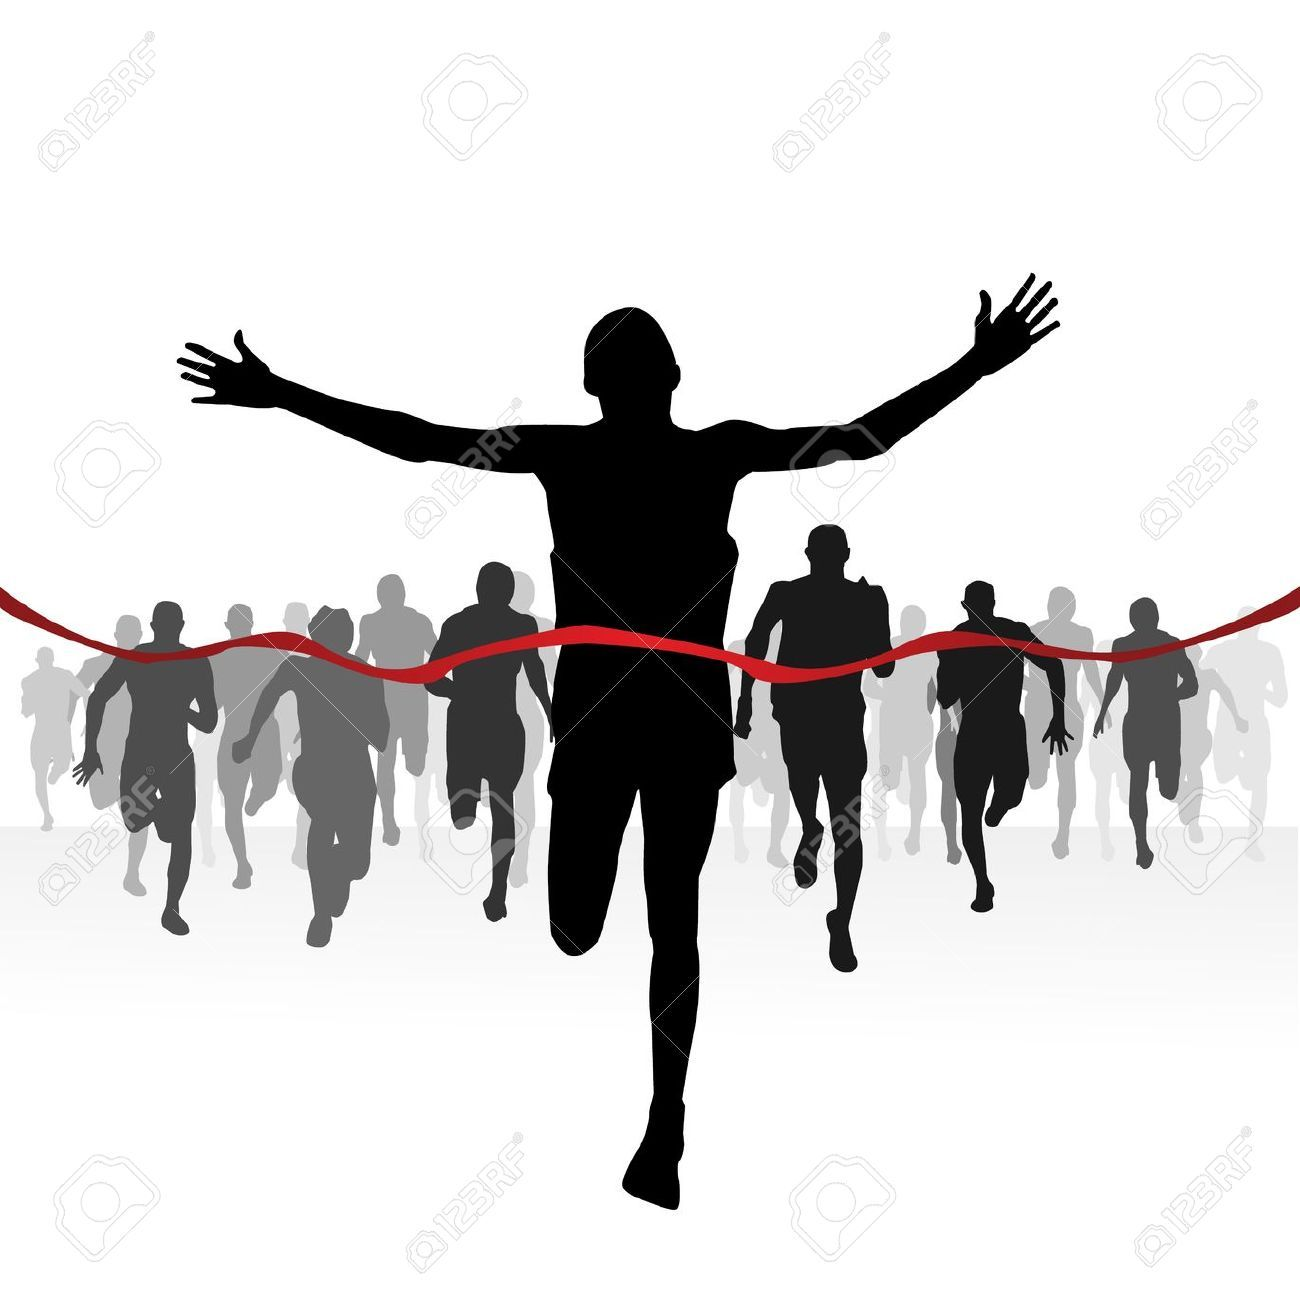 Runner crossing finish line clipart png freeuse download Runner crossing finish line clipart 1 » Clipart Portal png freeuse download